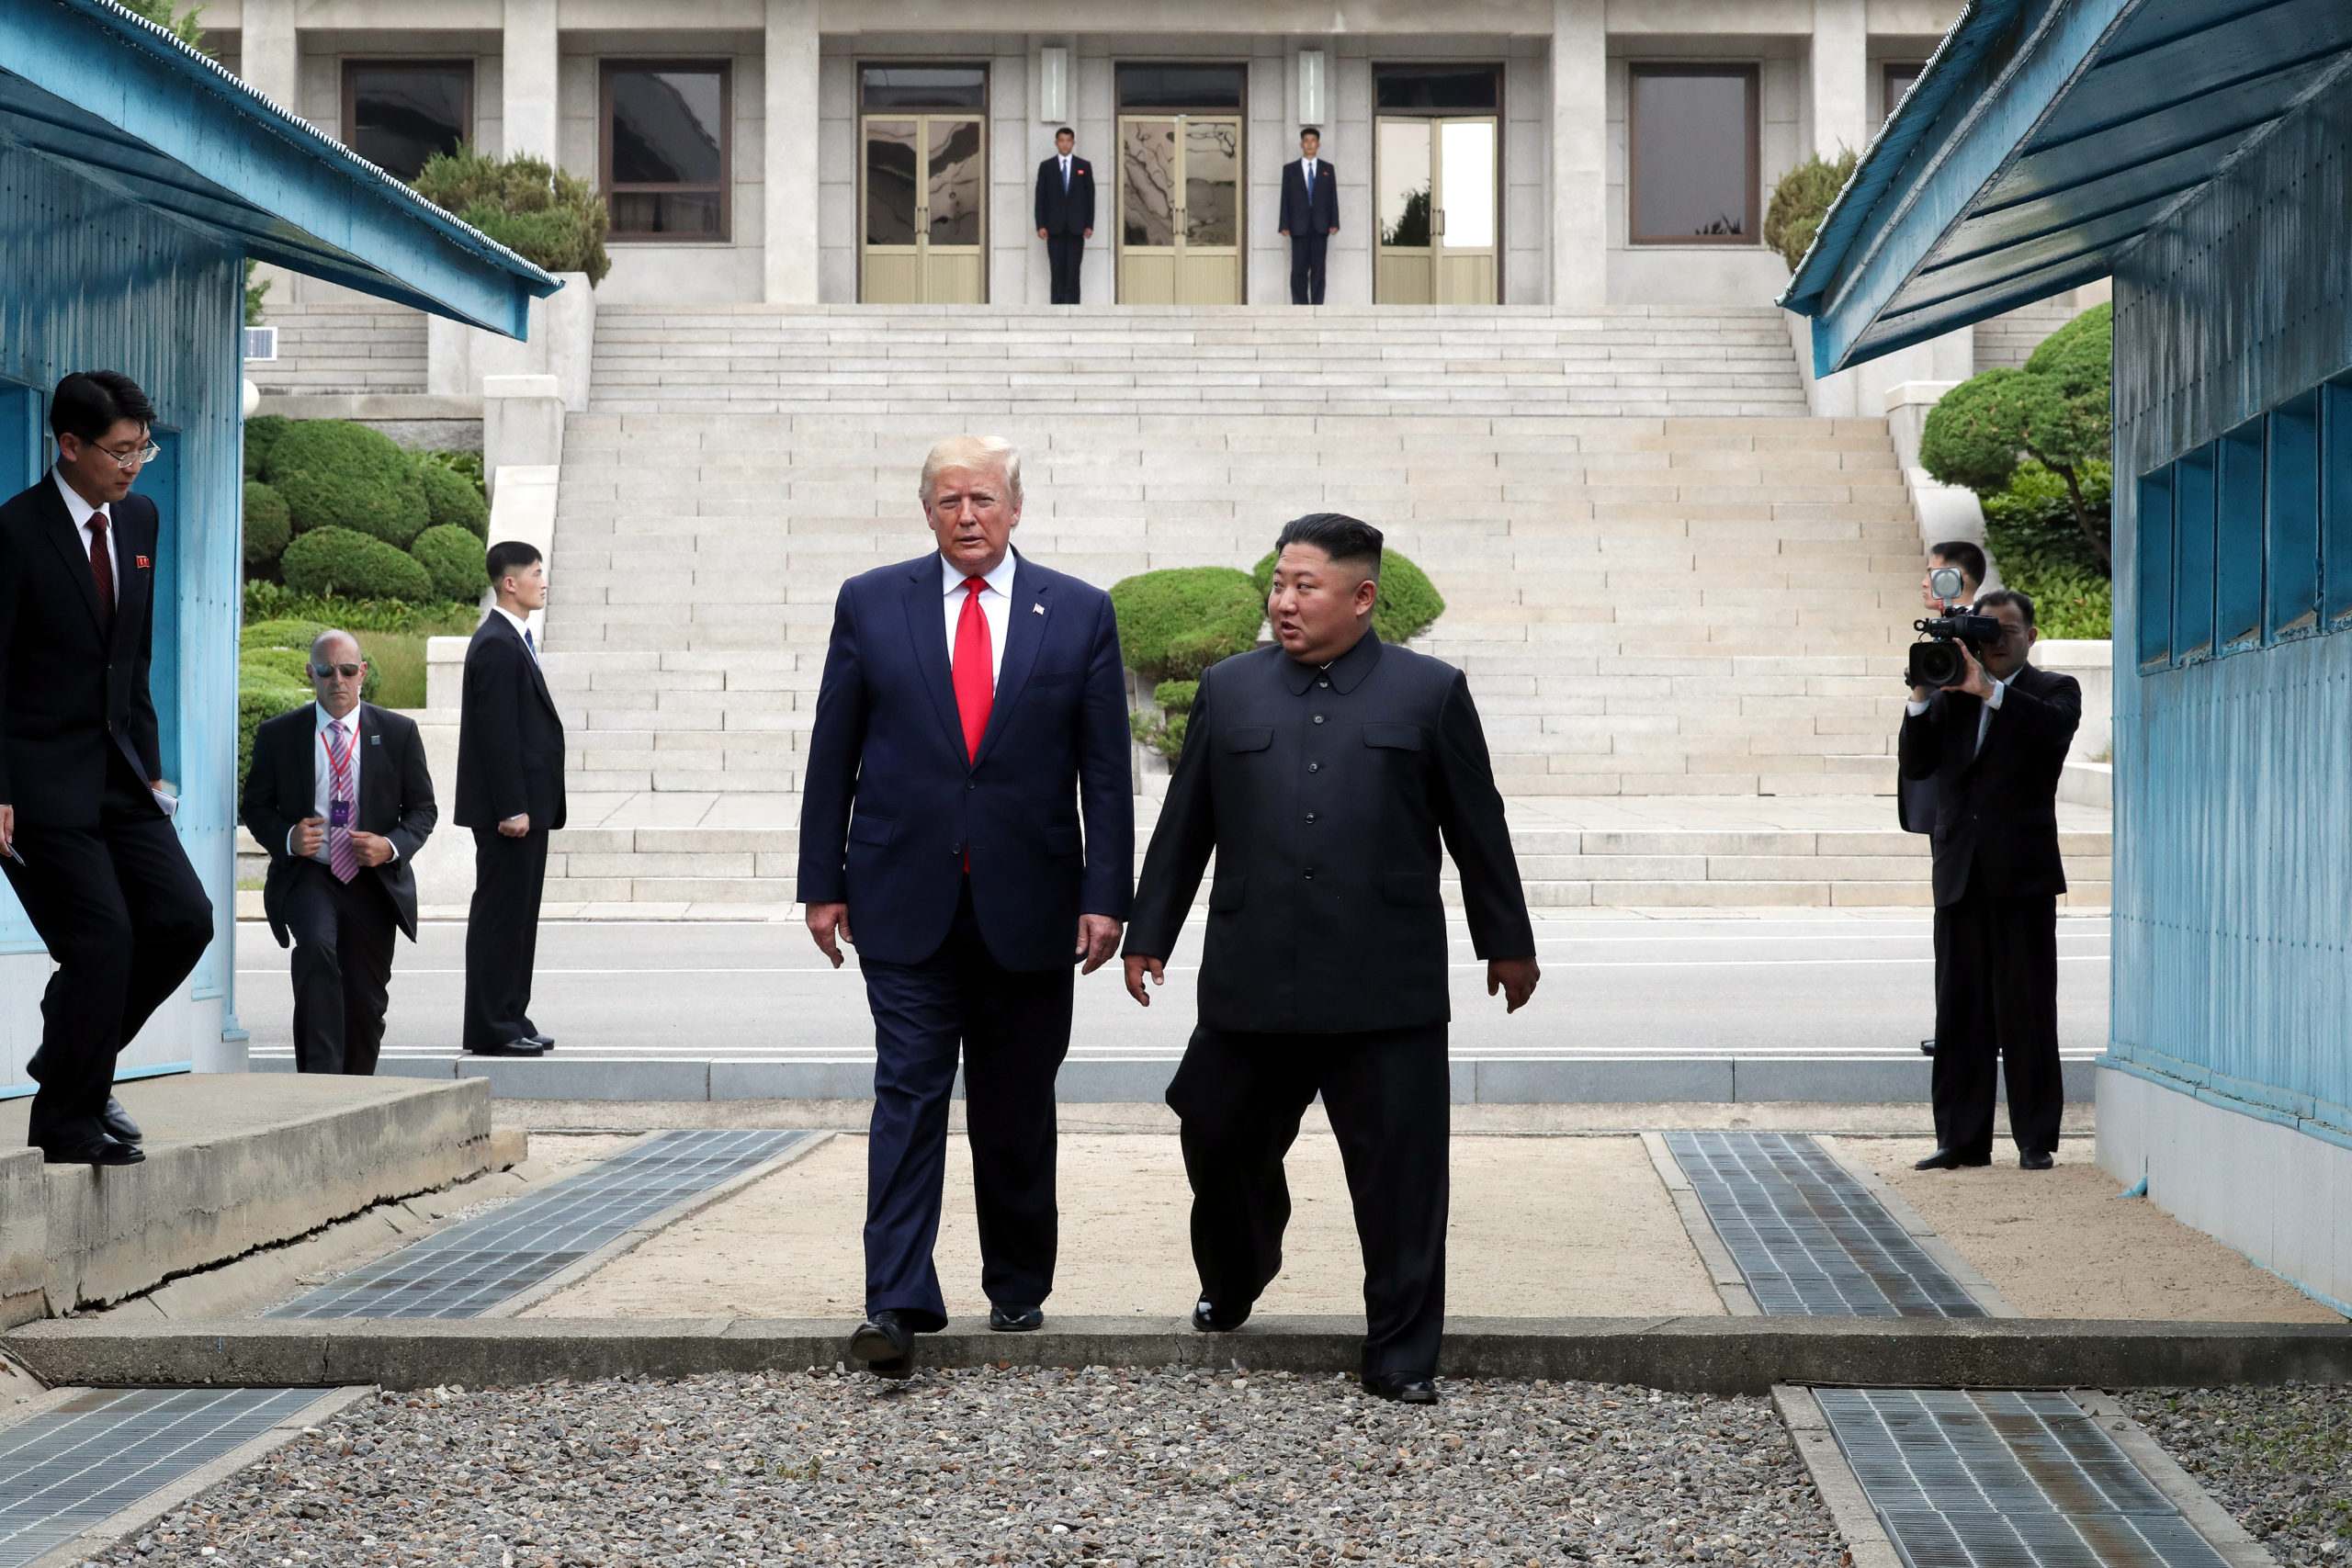 North Korean leader Kim Jong Un and U.S. President Donald Trump inside the demilitarized zone separating the South and North Korea on June 30, 2019 in Panmunjom, South Korea. (Dong-A Ilbo/Handout/Getty Images)